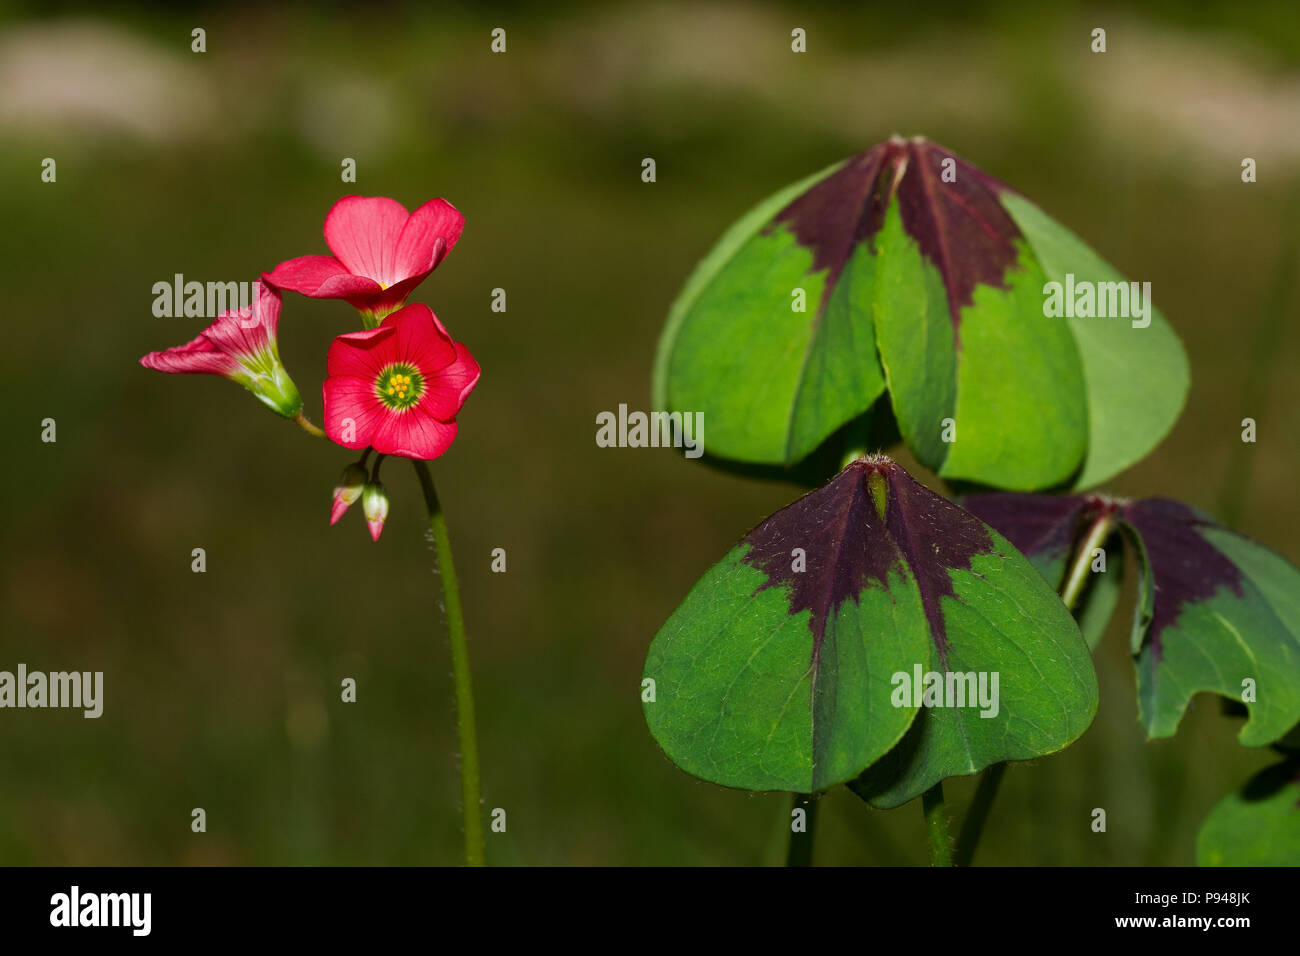 Leaves and flowers of Iron Cross plant, also known as Four-leaved pink-sorrel Stock Photo